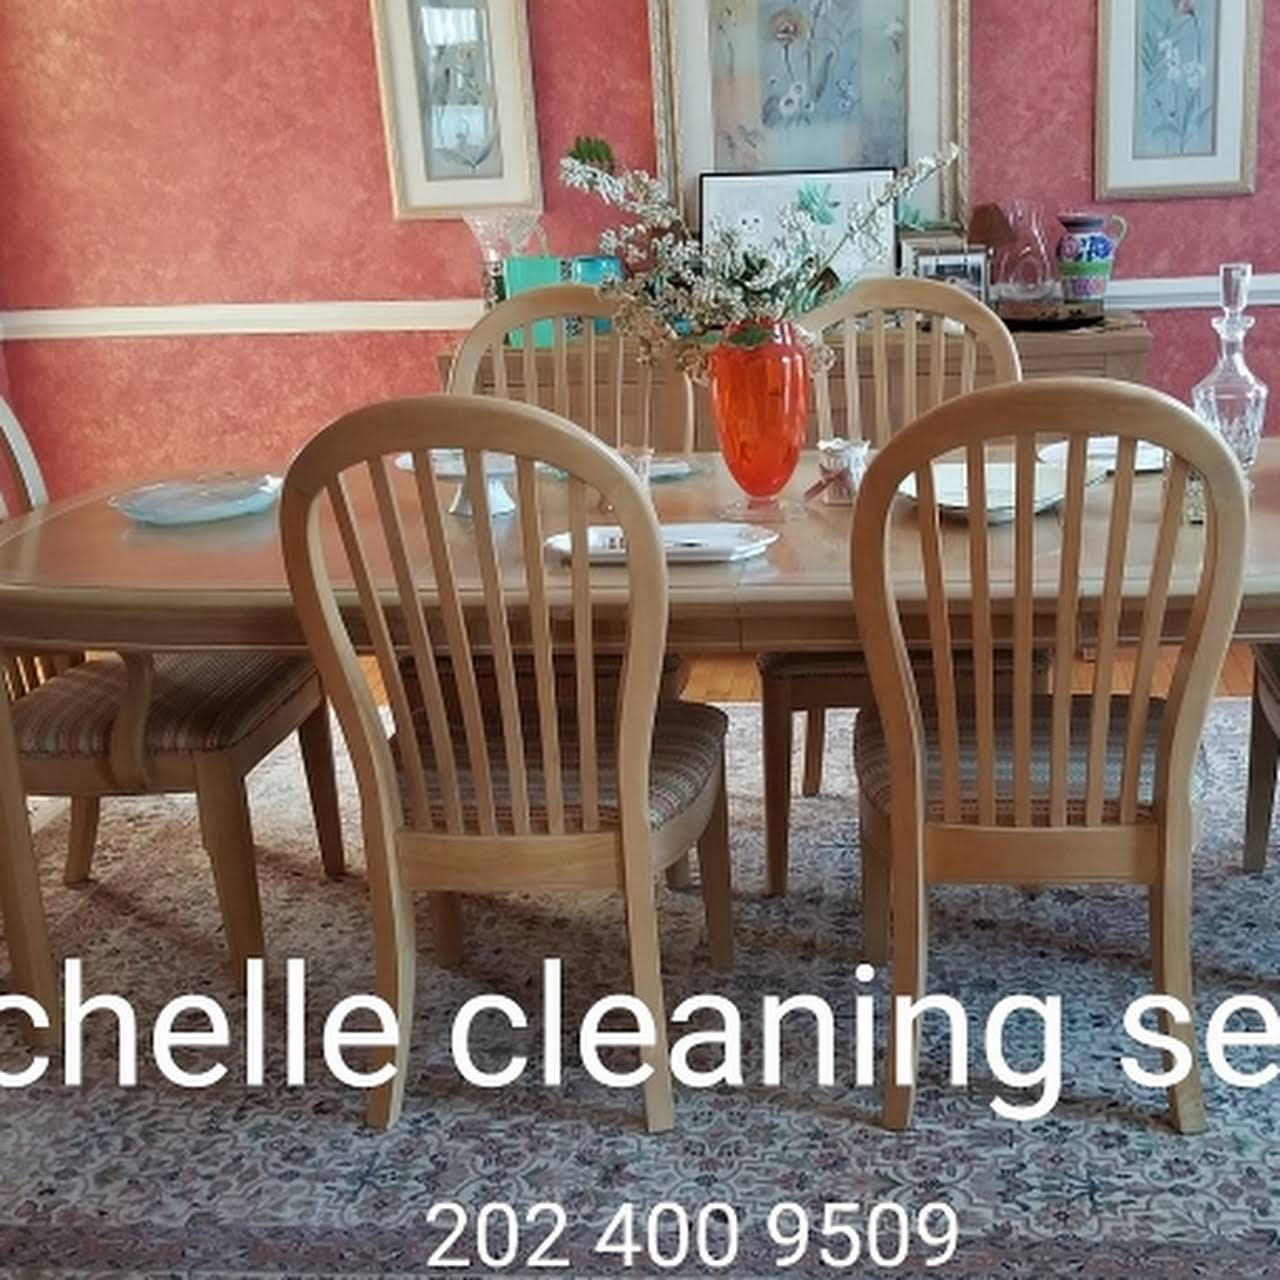 Michelle cleans to perfection LLC image 2